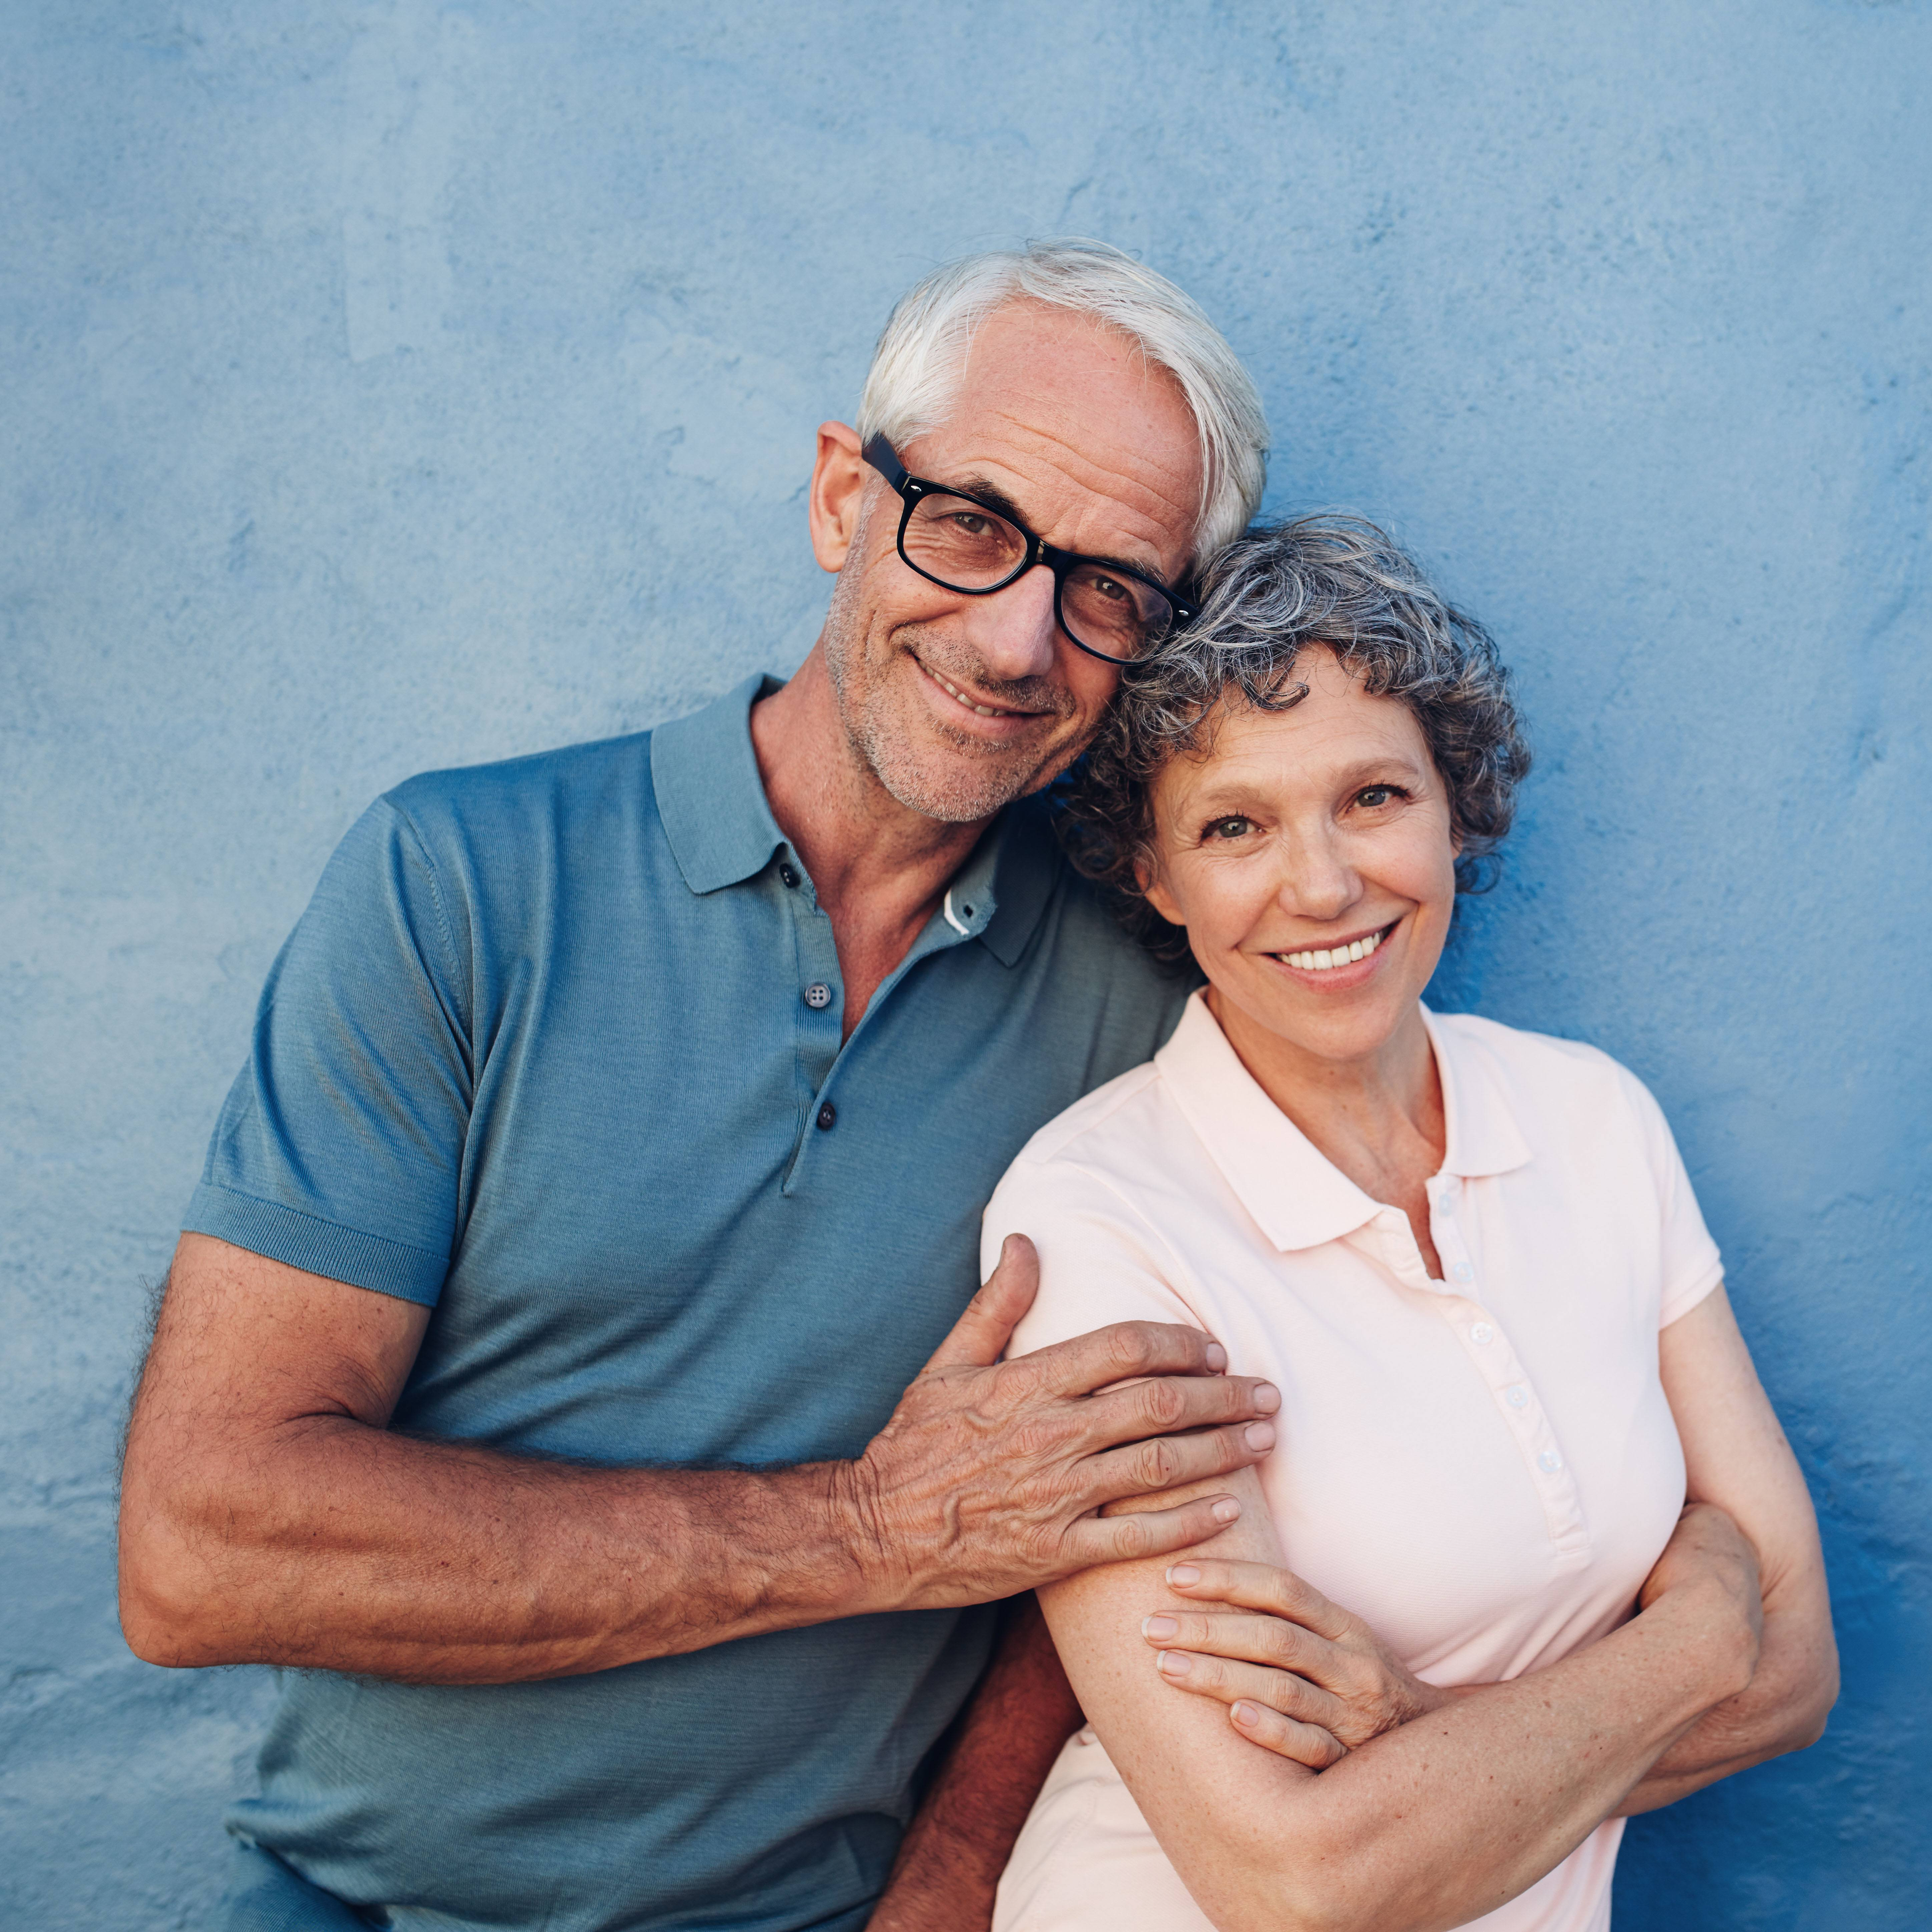 a happy, smiling middle-aged couple standing together in front of a blue wall